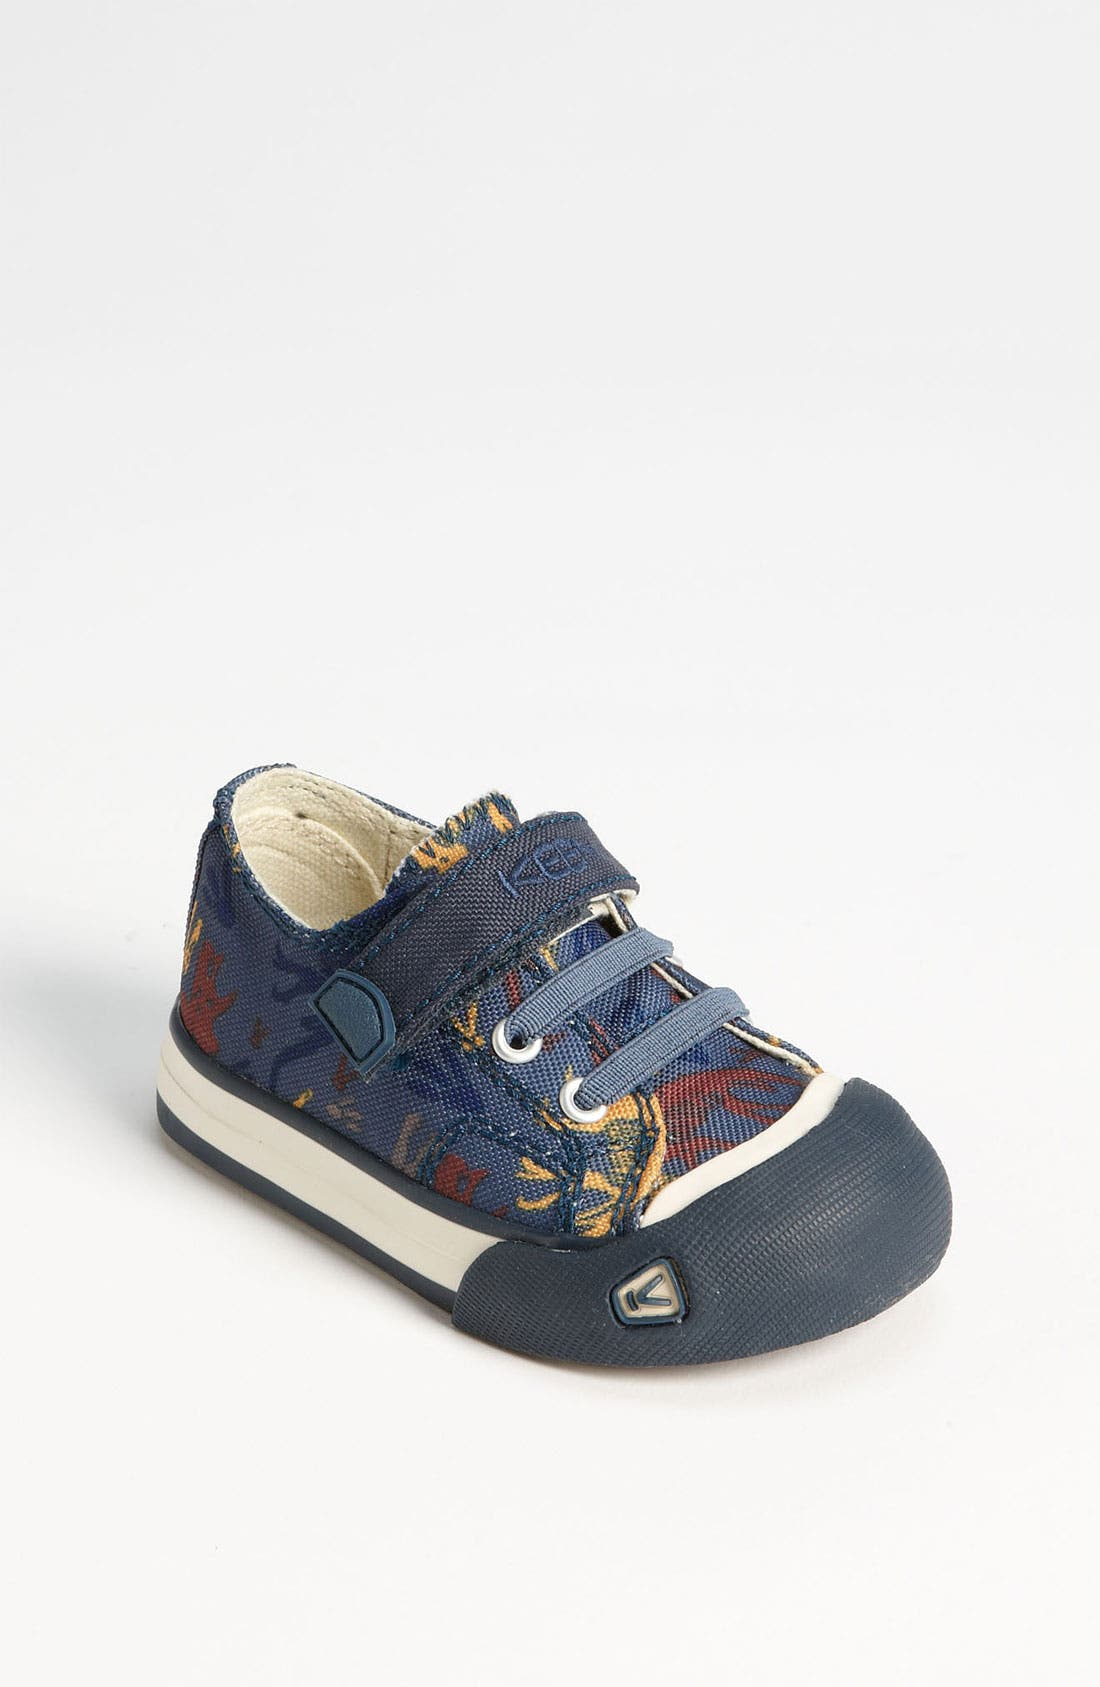 Alternate Image 1 Selected - Keen 'Coronado' Print Sneaker (Baby, Walker, Toddler & Little Kid)